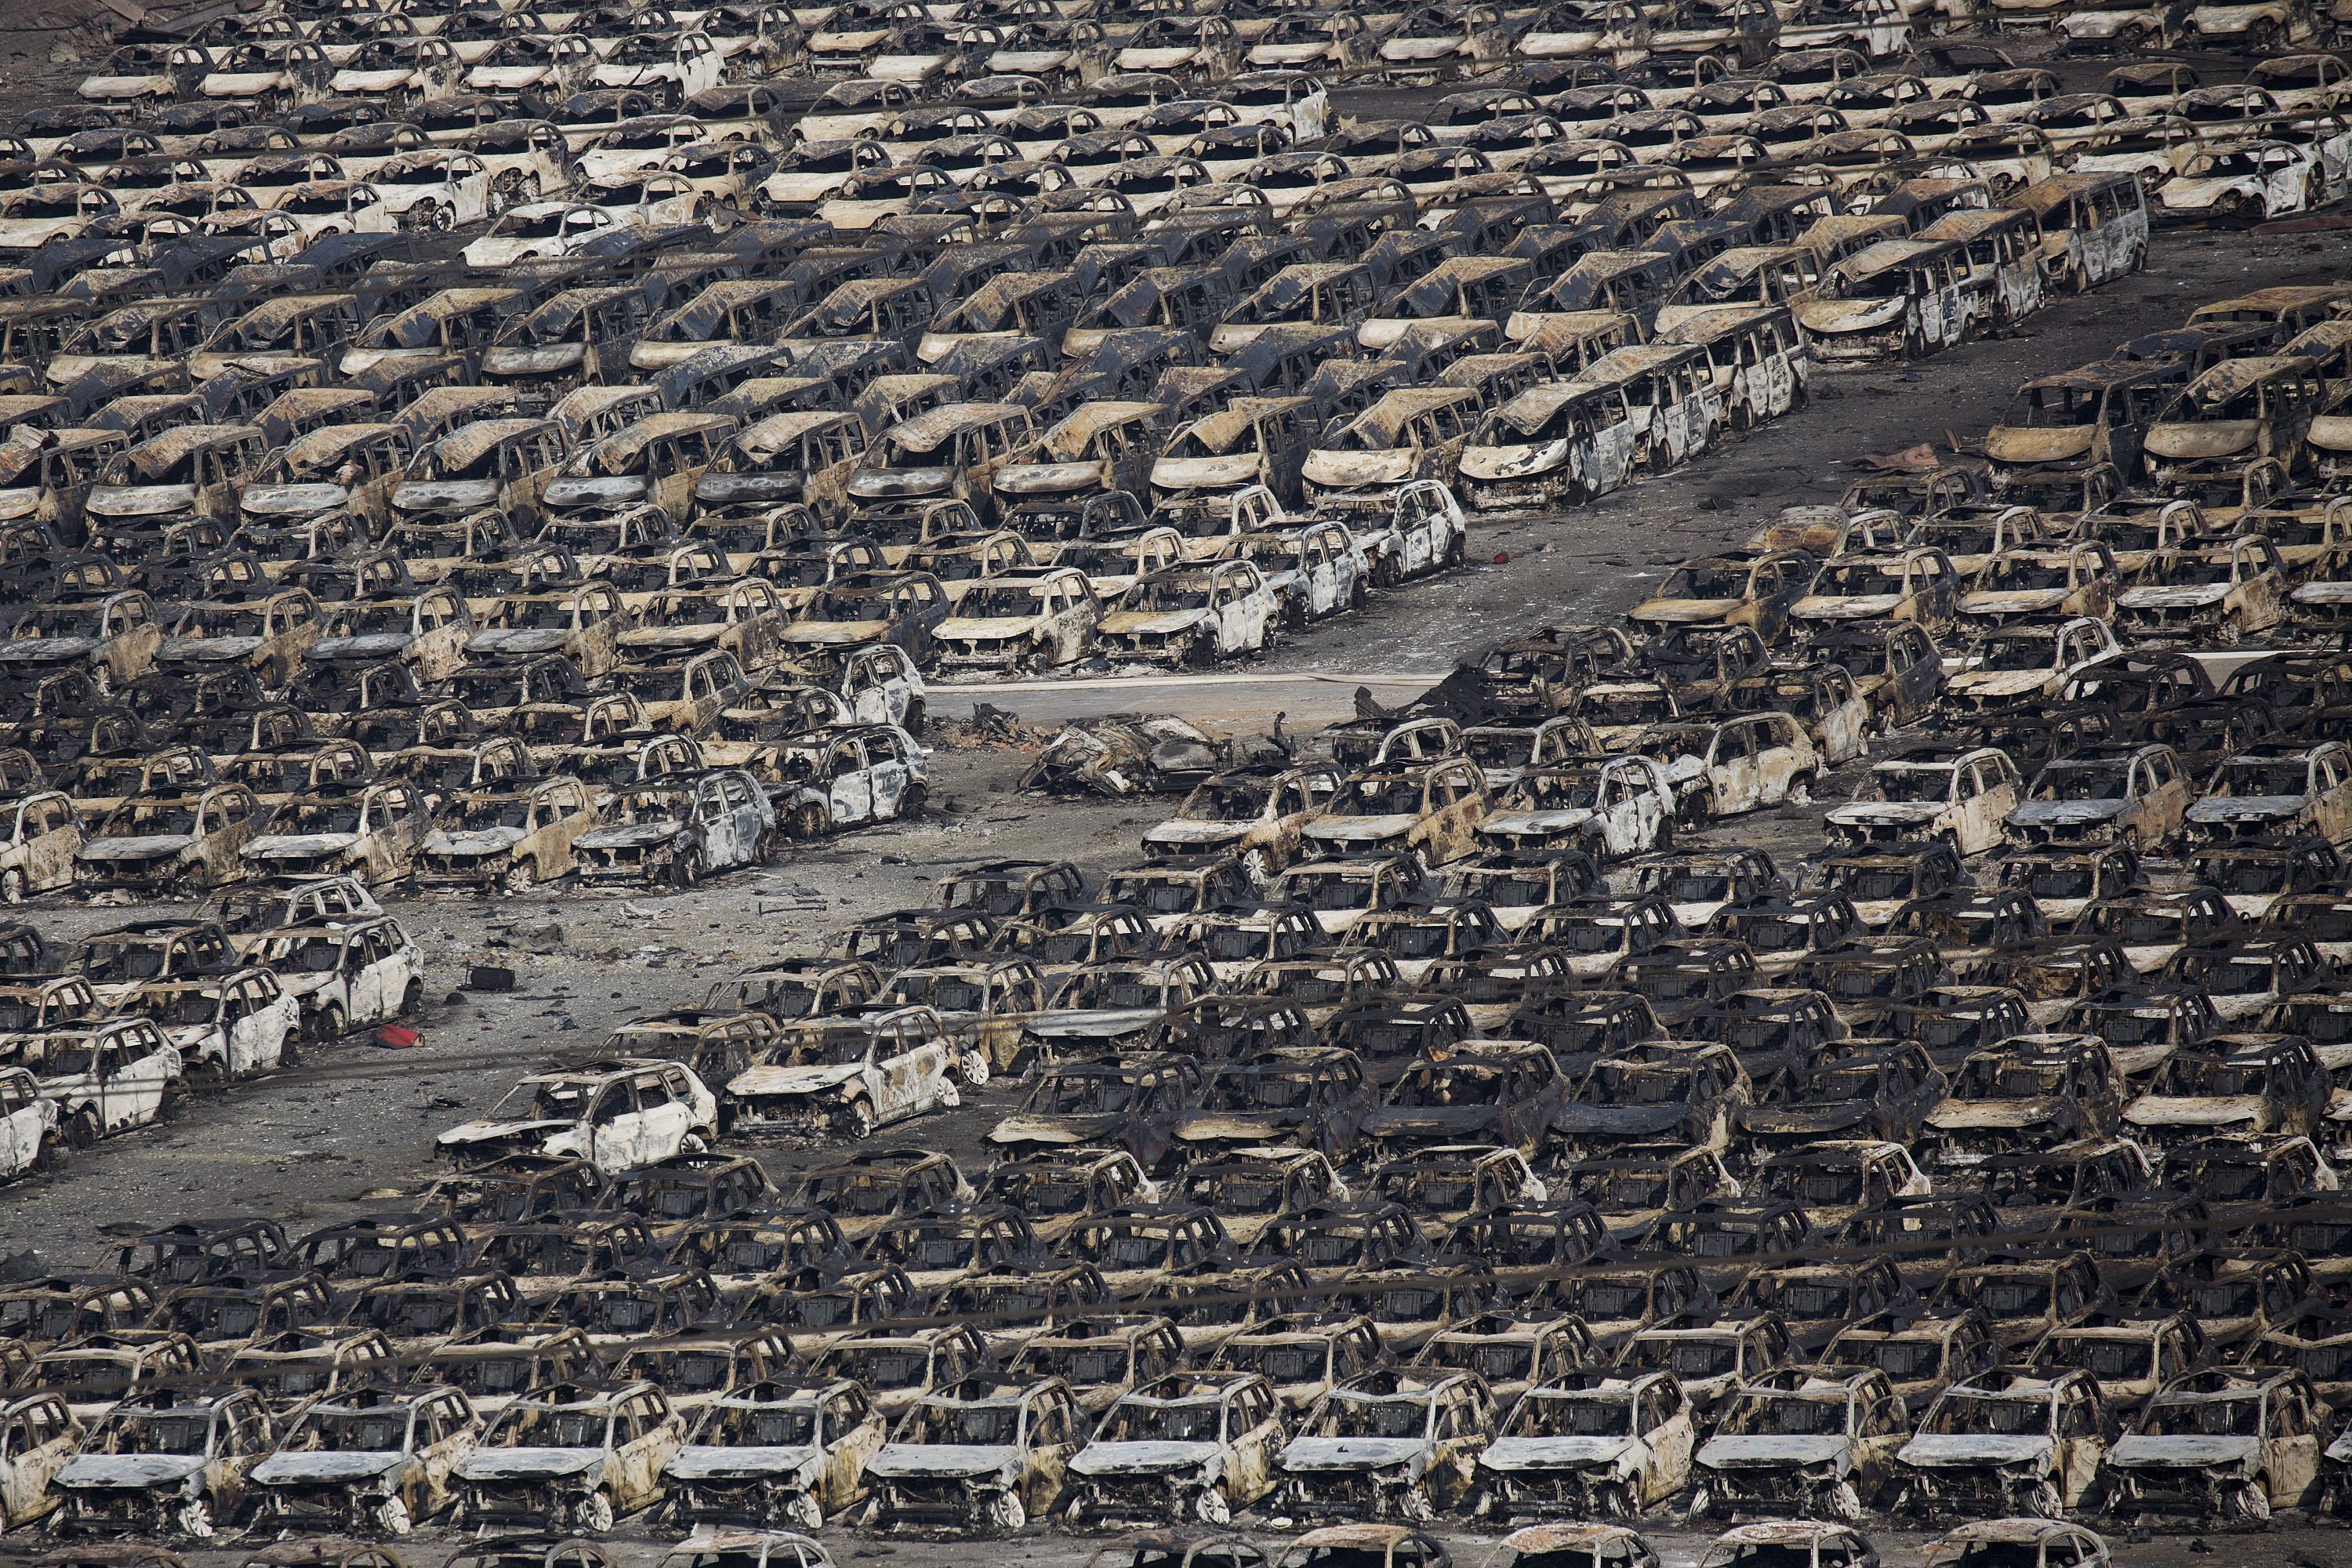 Burnt cars are seen near the site of the explosions, August 13, 2015. Photo by Damir Sagolj/Reuters